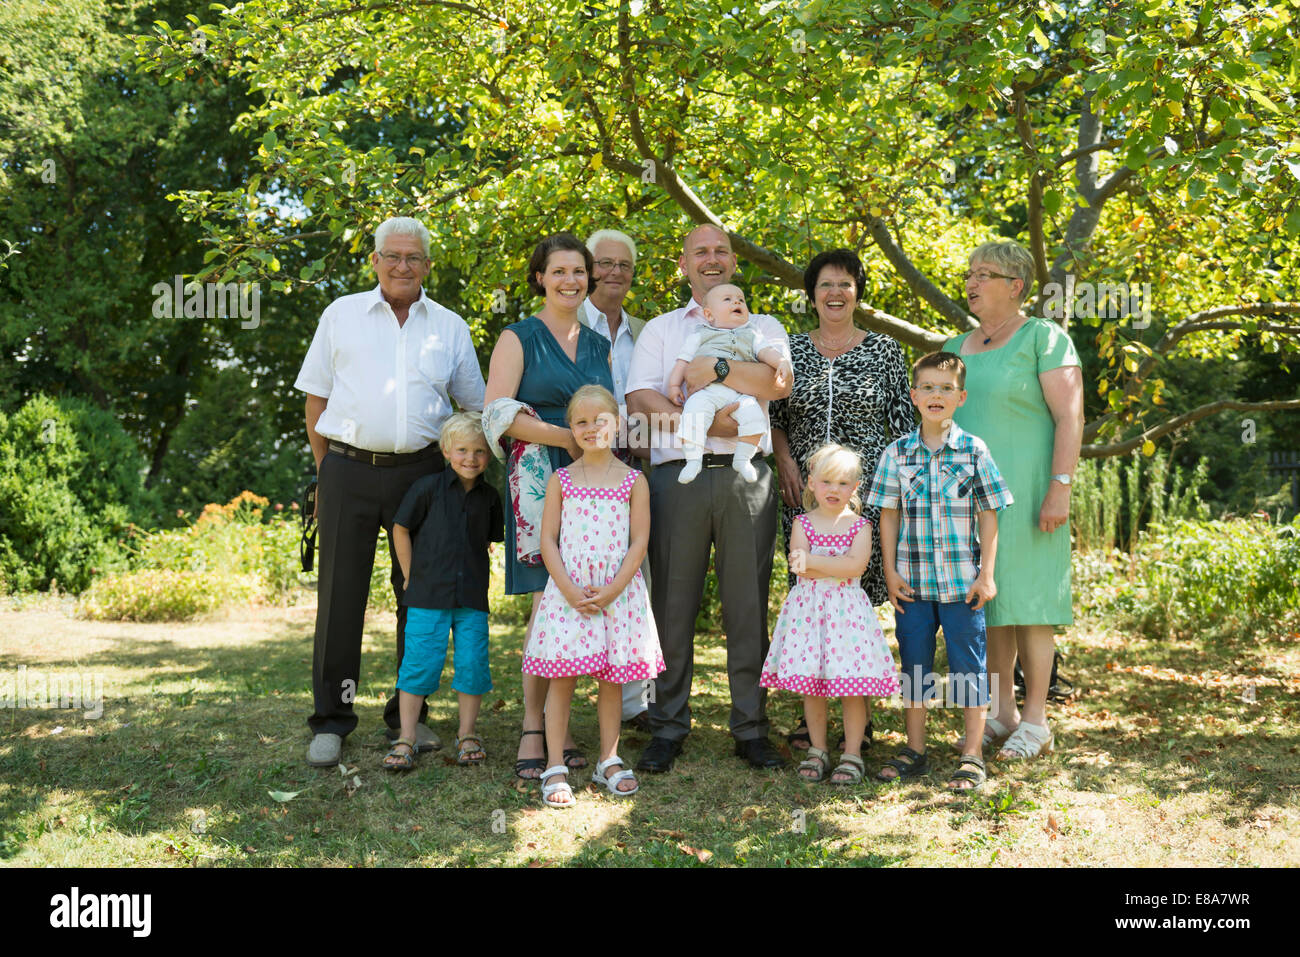 Family portrait of multi-generation family - Stock Image